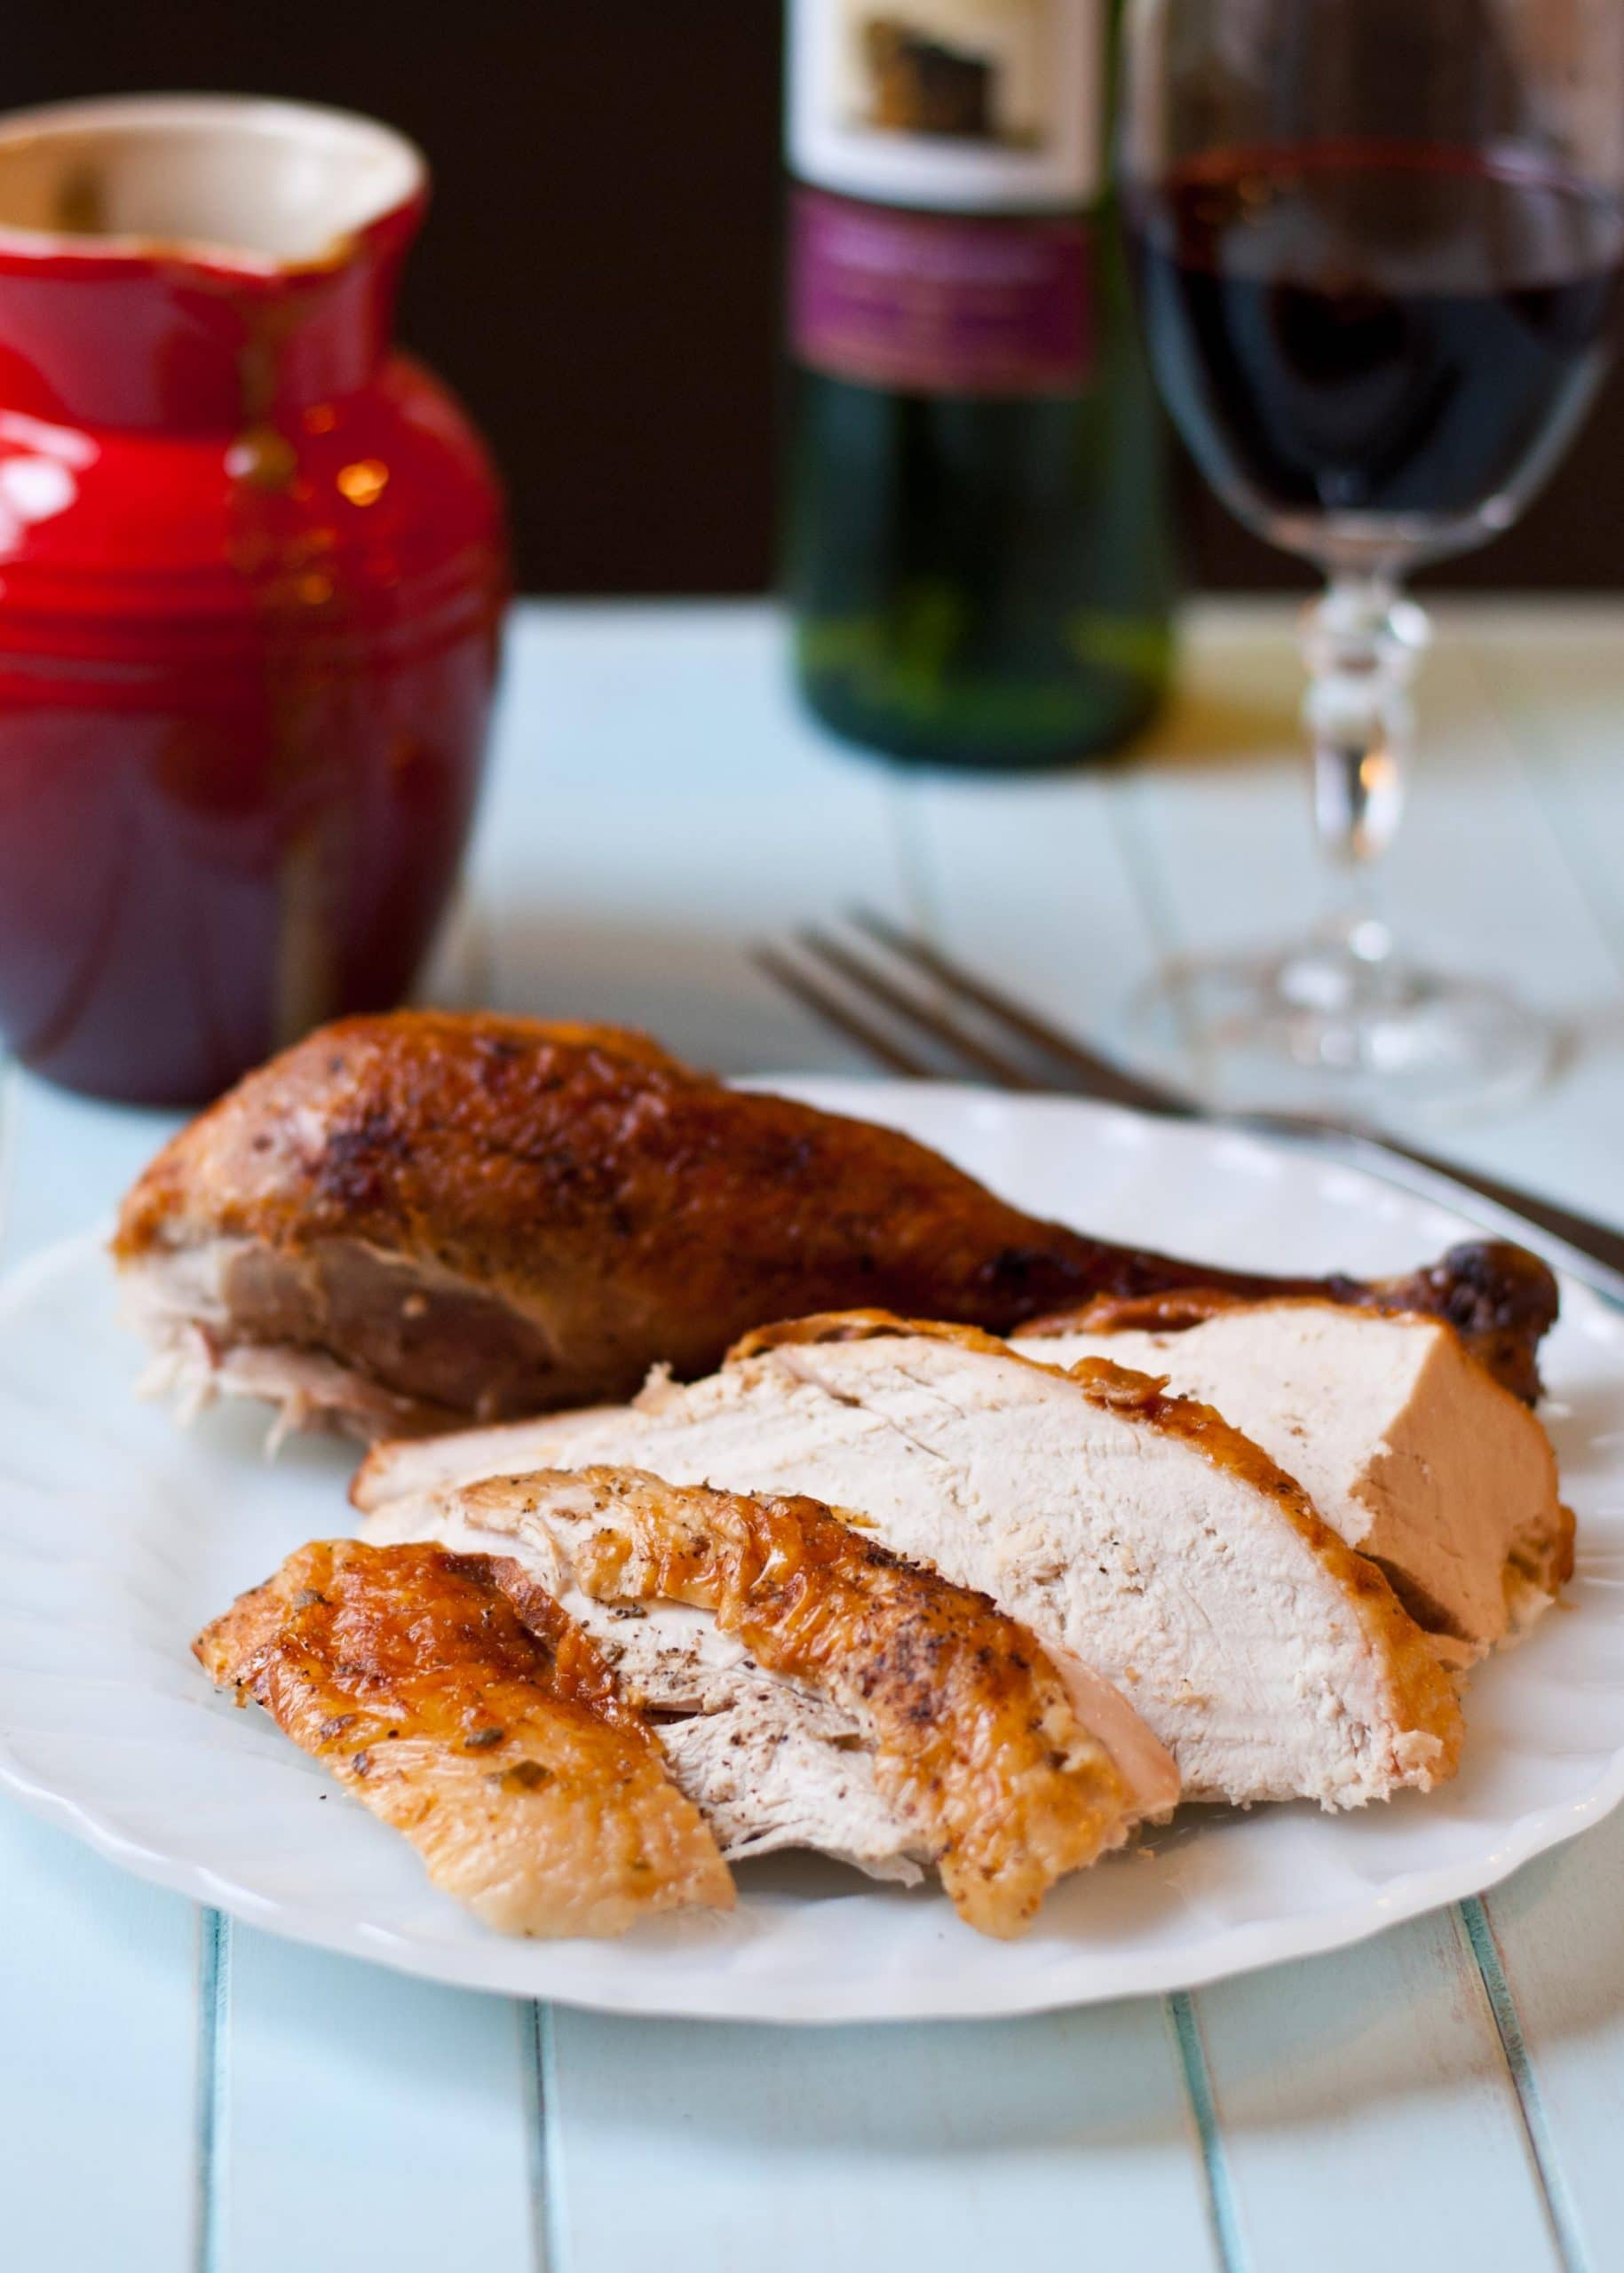 Easy Garlic and Herb Turkey--no fuss, no frills, just really good turkey!